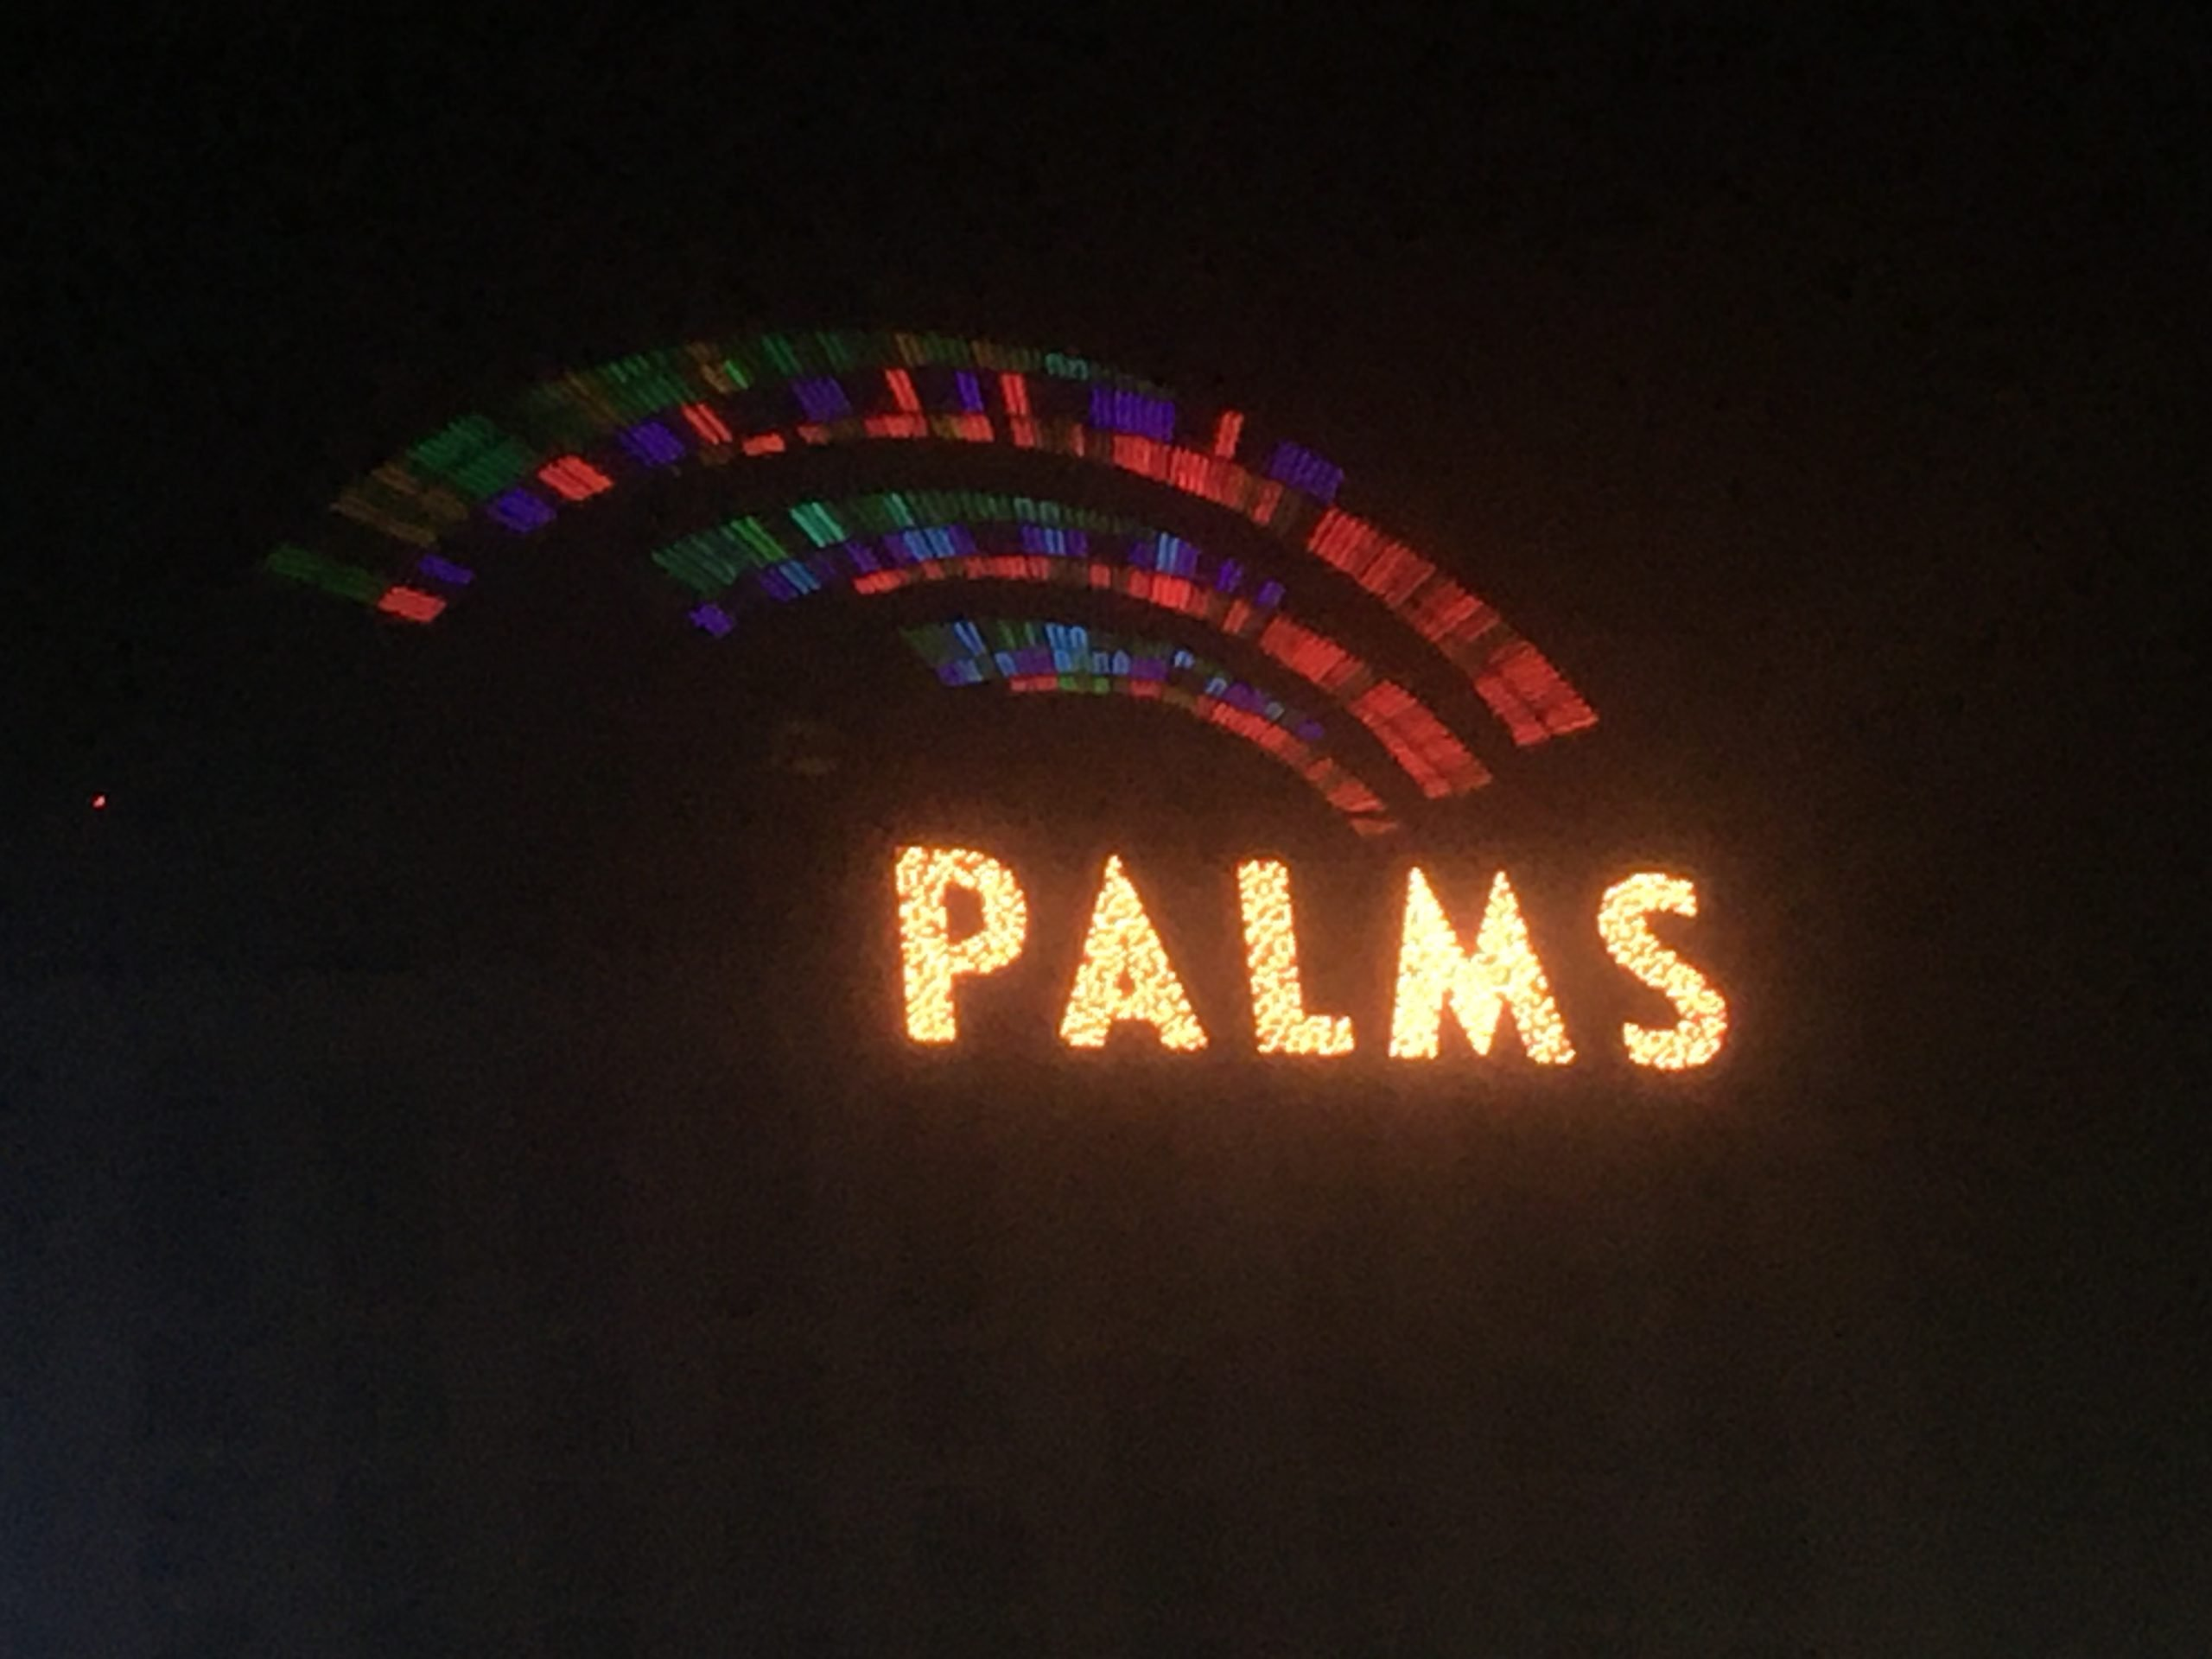 Palms Resort Casino 2020, Palms Casino 2020, Palms Hotel and Casino 2020